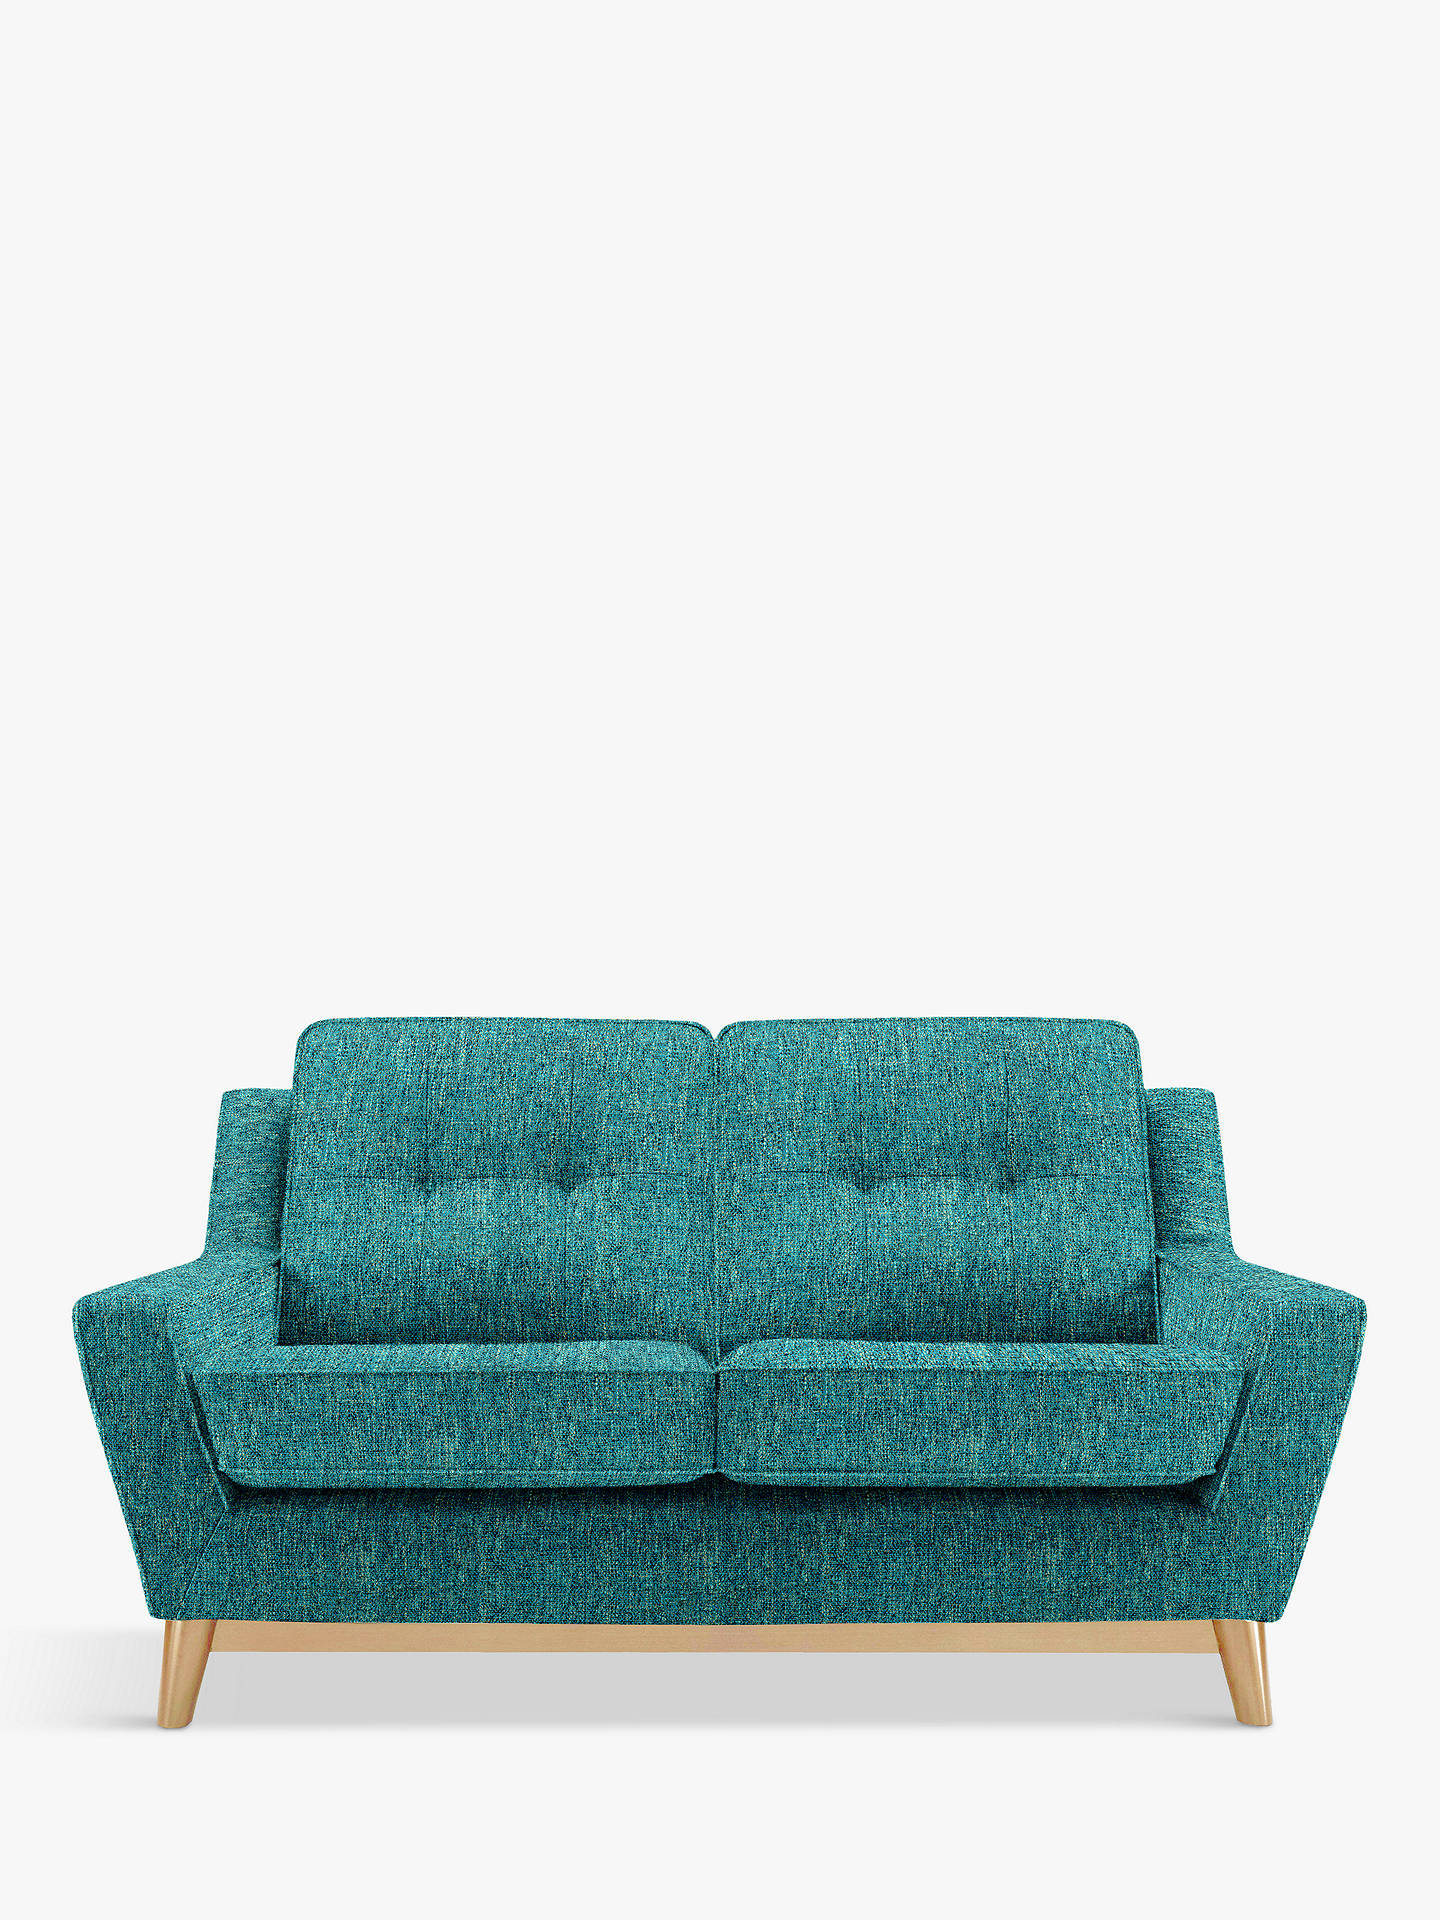 Miraculous G Plan Vintage The Fifty Three Small 2 Seater Sofa Piero Teal Theyellowbook Wood Chair Design Ideas Theyellowbookinfo